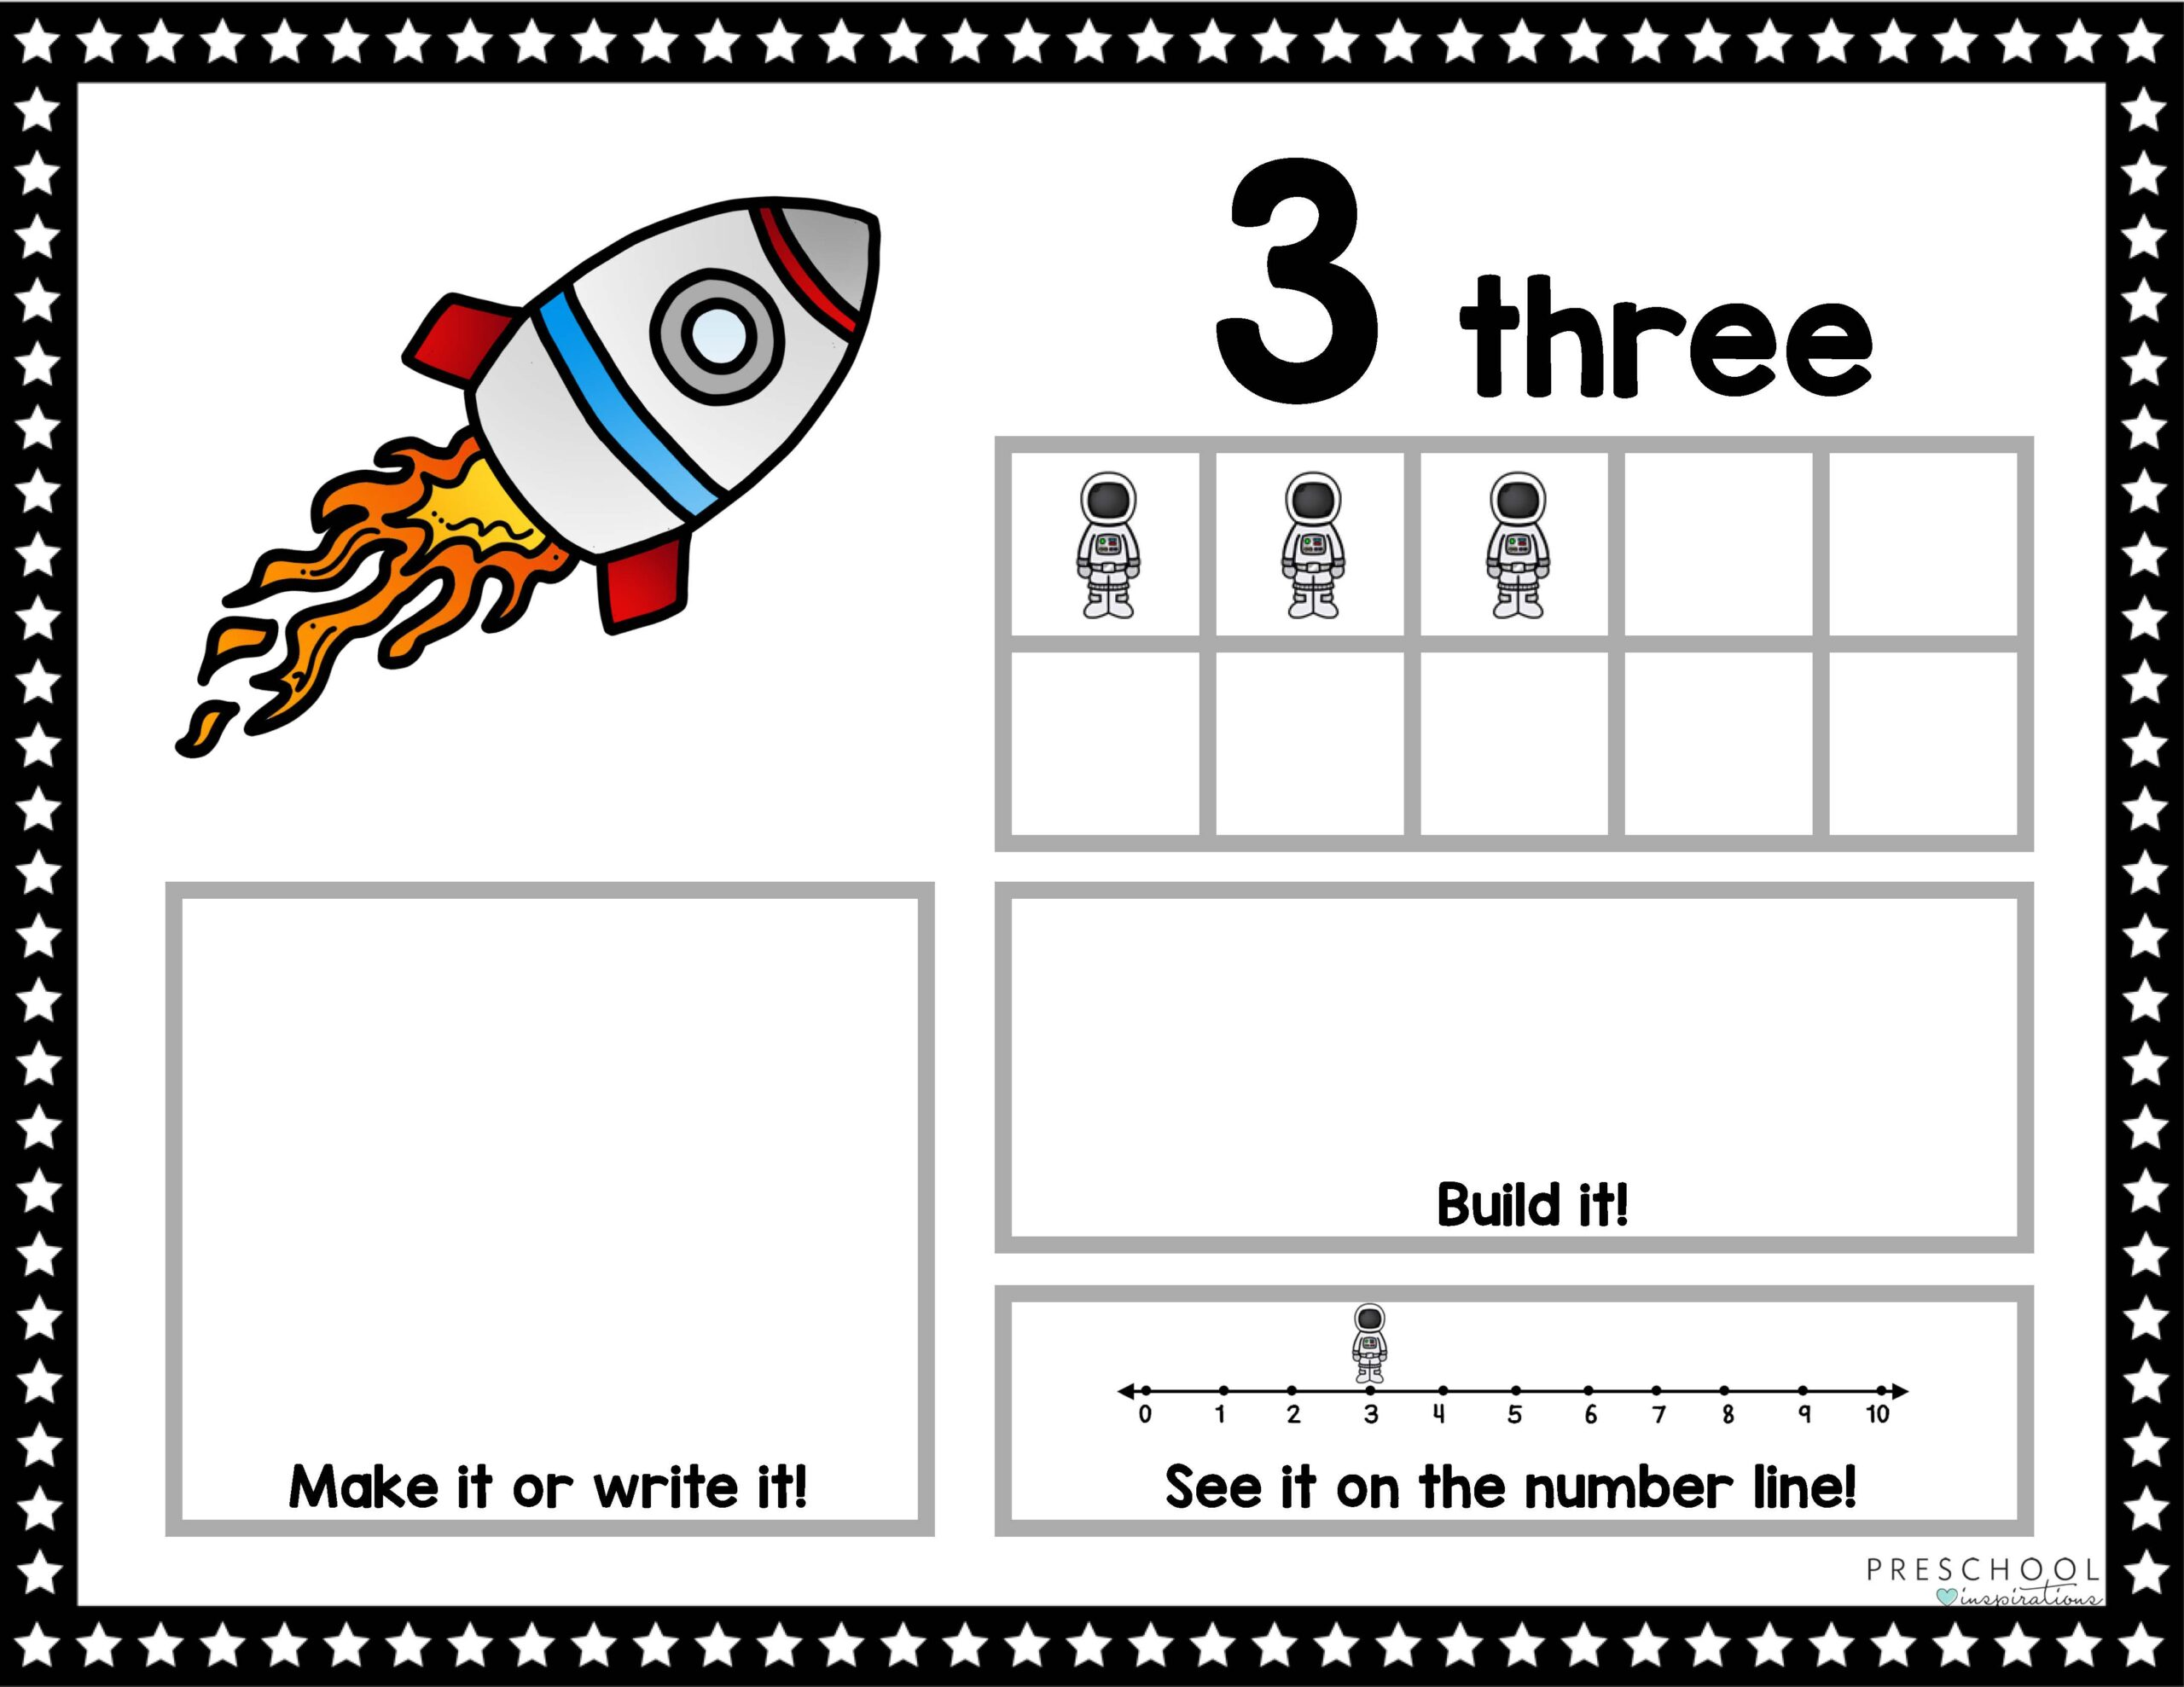 a space-themed ten frame mat showing the number three